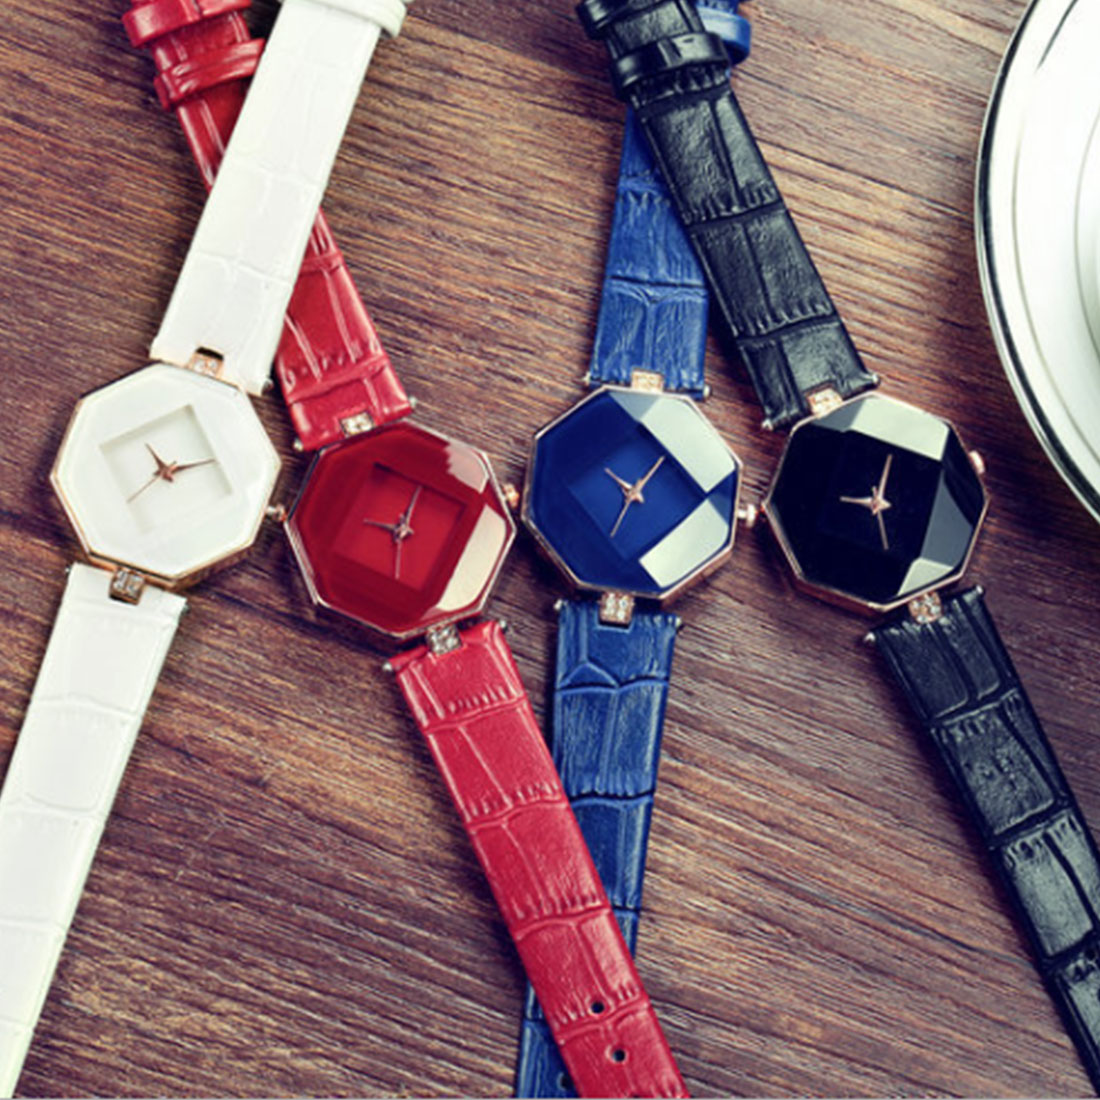 2019 NEW Fashion Diamond dial Shape Ladies Watches Woman leather watchband Quartz wristwatches Gift Christmas Feminino in Women 39 s Watches from Watches